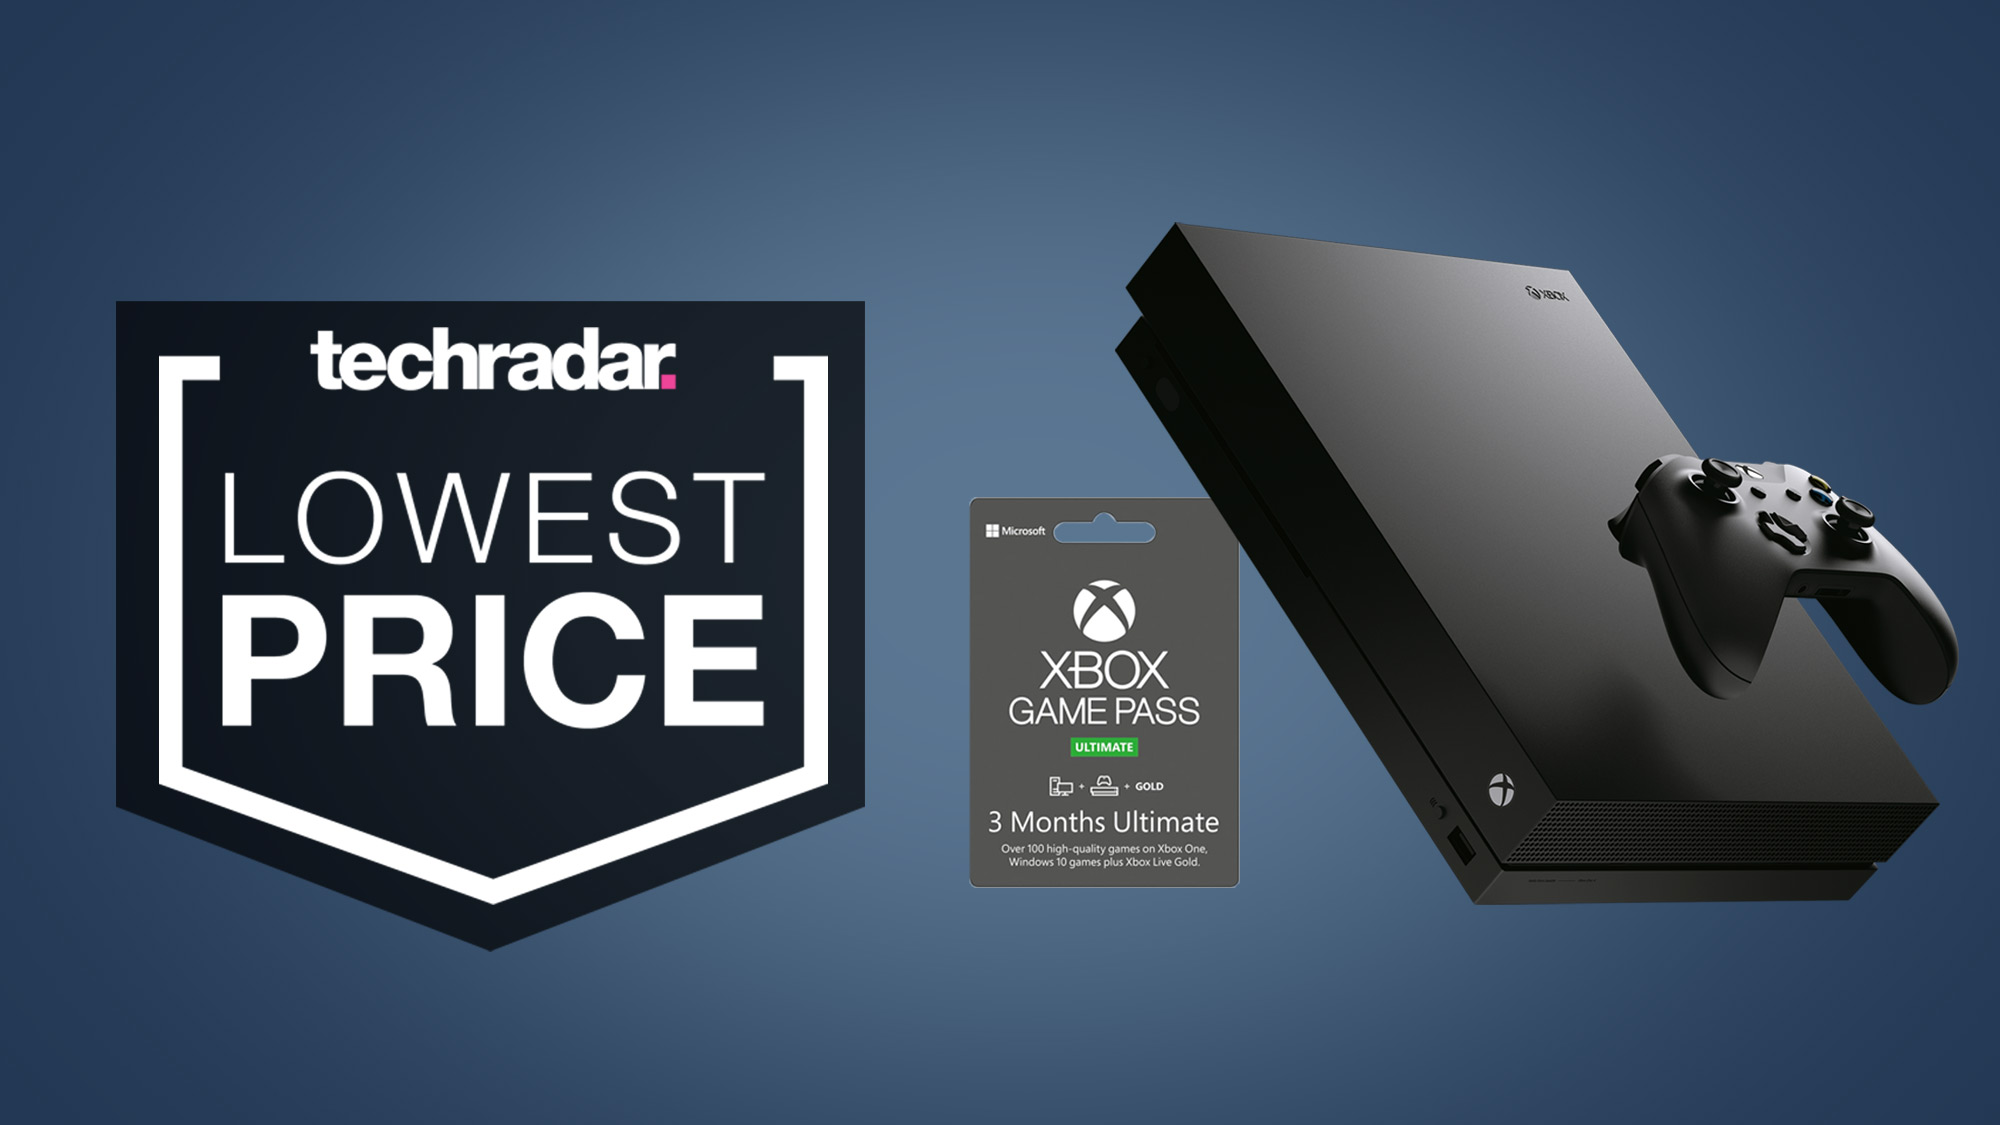 Last chance Xbox One X deals offer extra Game Pass Ultimate membership free